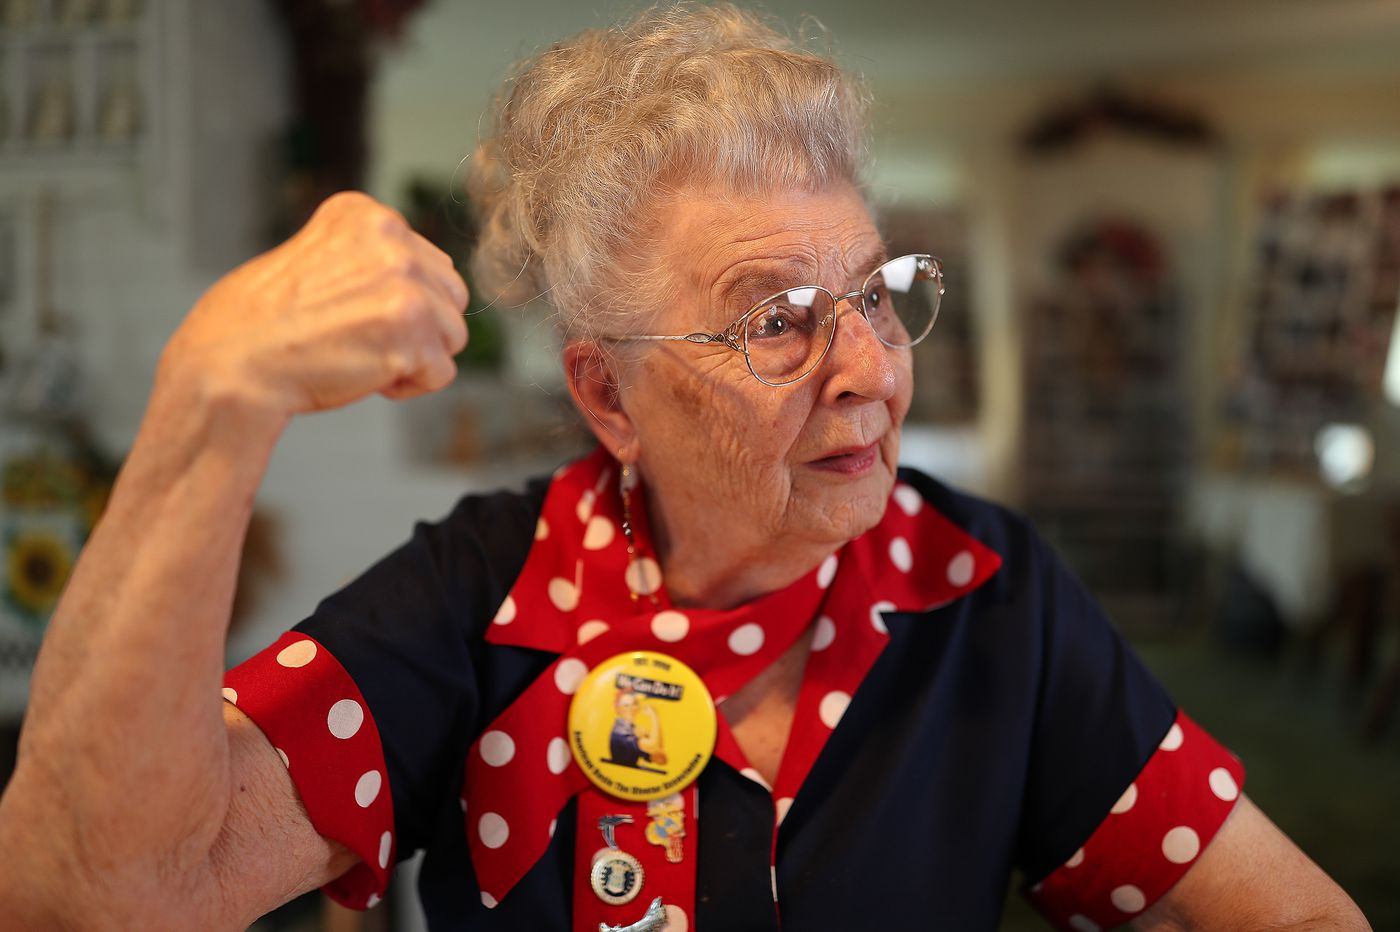 An original Rosie the Riveter from Bucks vies for Congressional Medal, remembering how she helped save the world